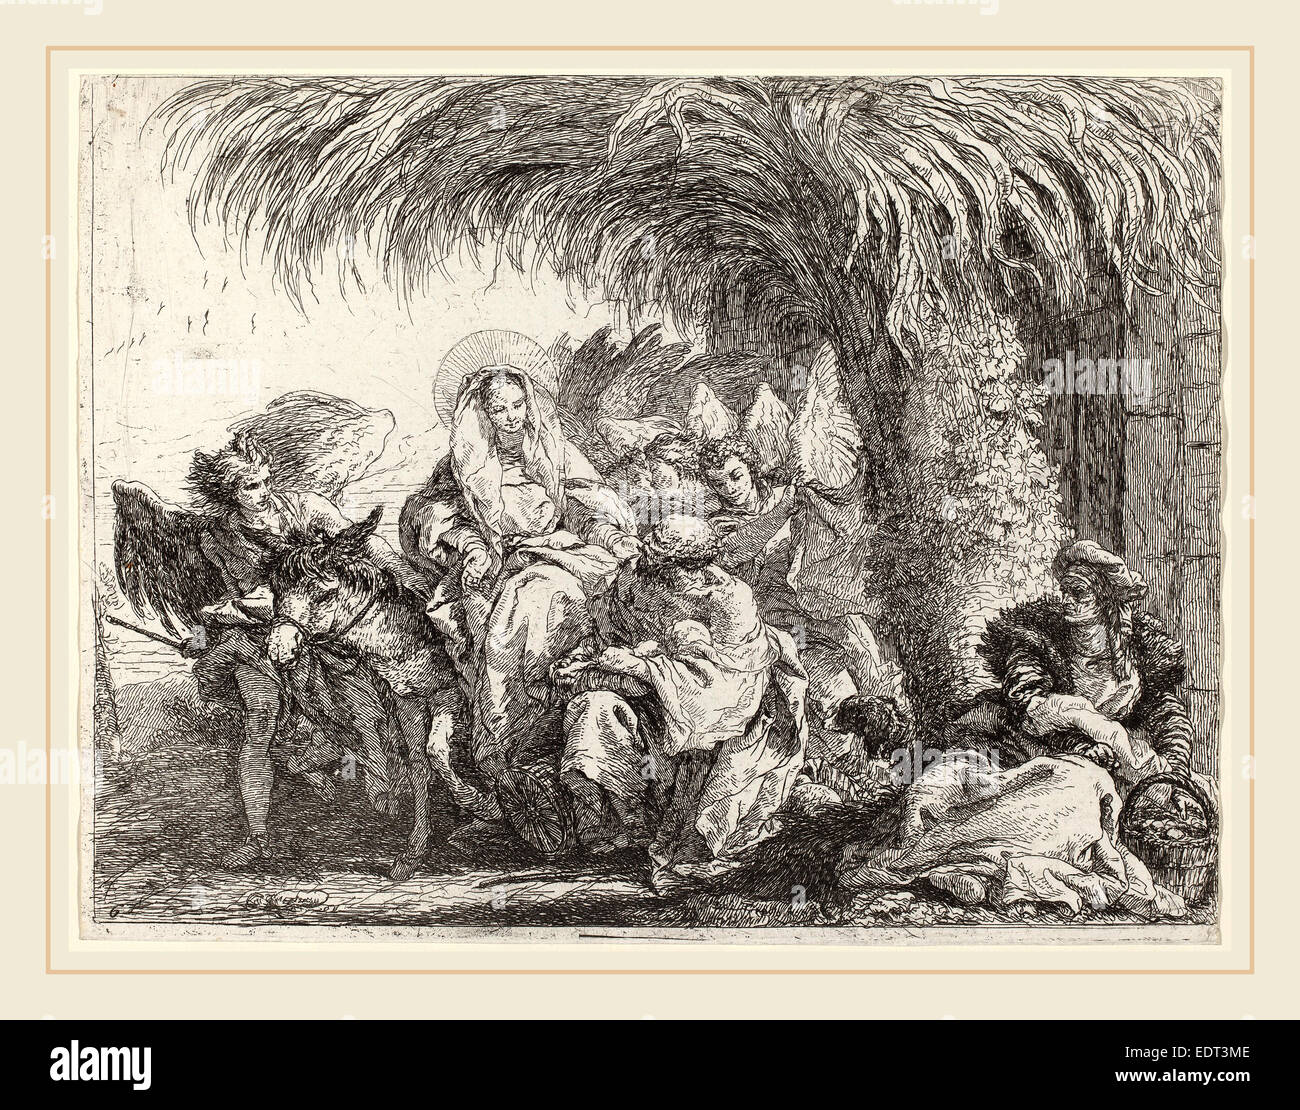 Giovanni Domenico Tiepolo (Italian, 1727-1804), Joseph Kneels with the  Child before Mary on the Donkey, published 1753, etching